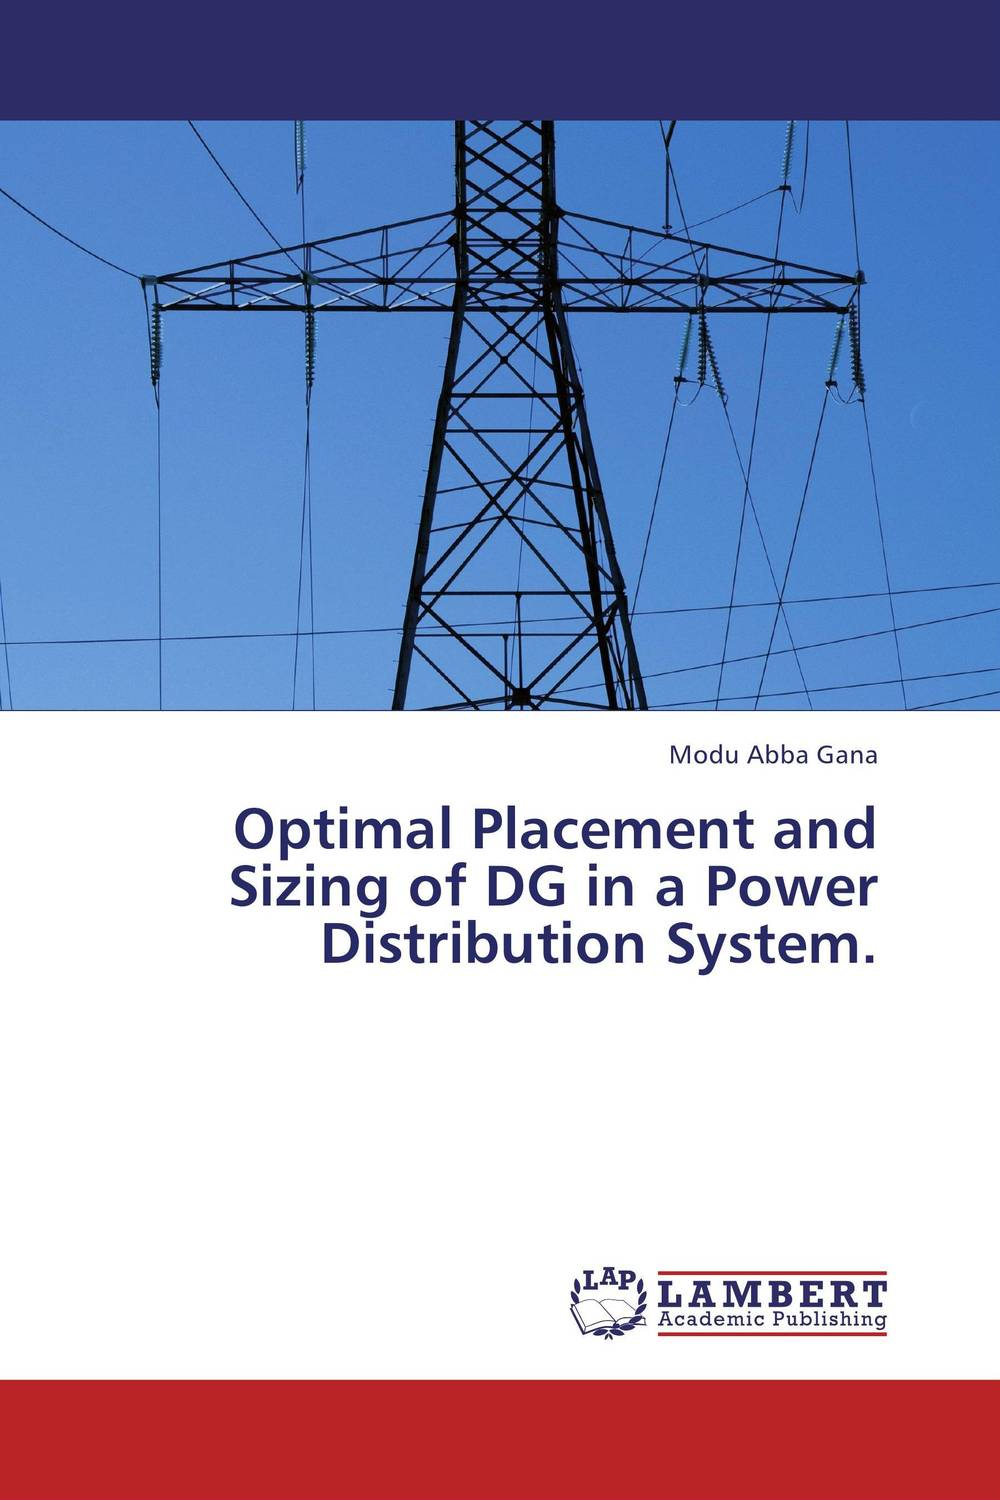 Optimal Placement and Sizing of DG in a Power Distribution System optimal capacity planning of distributed generators